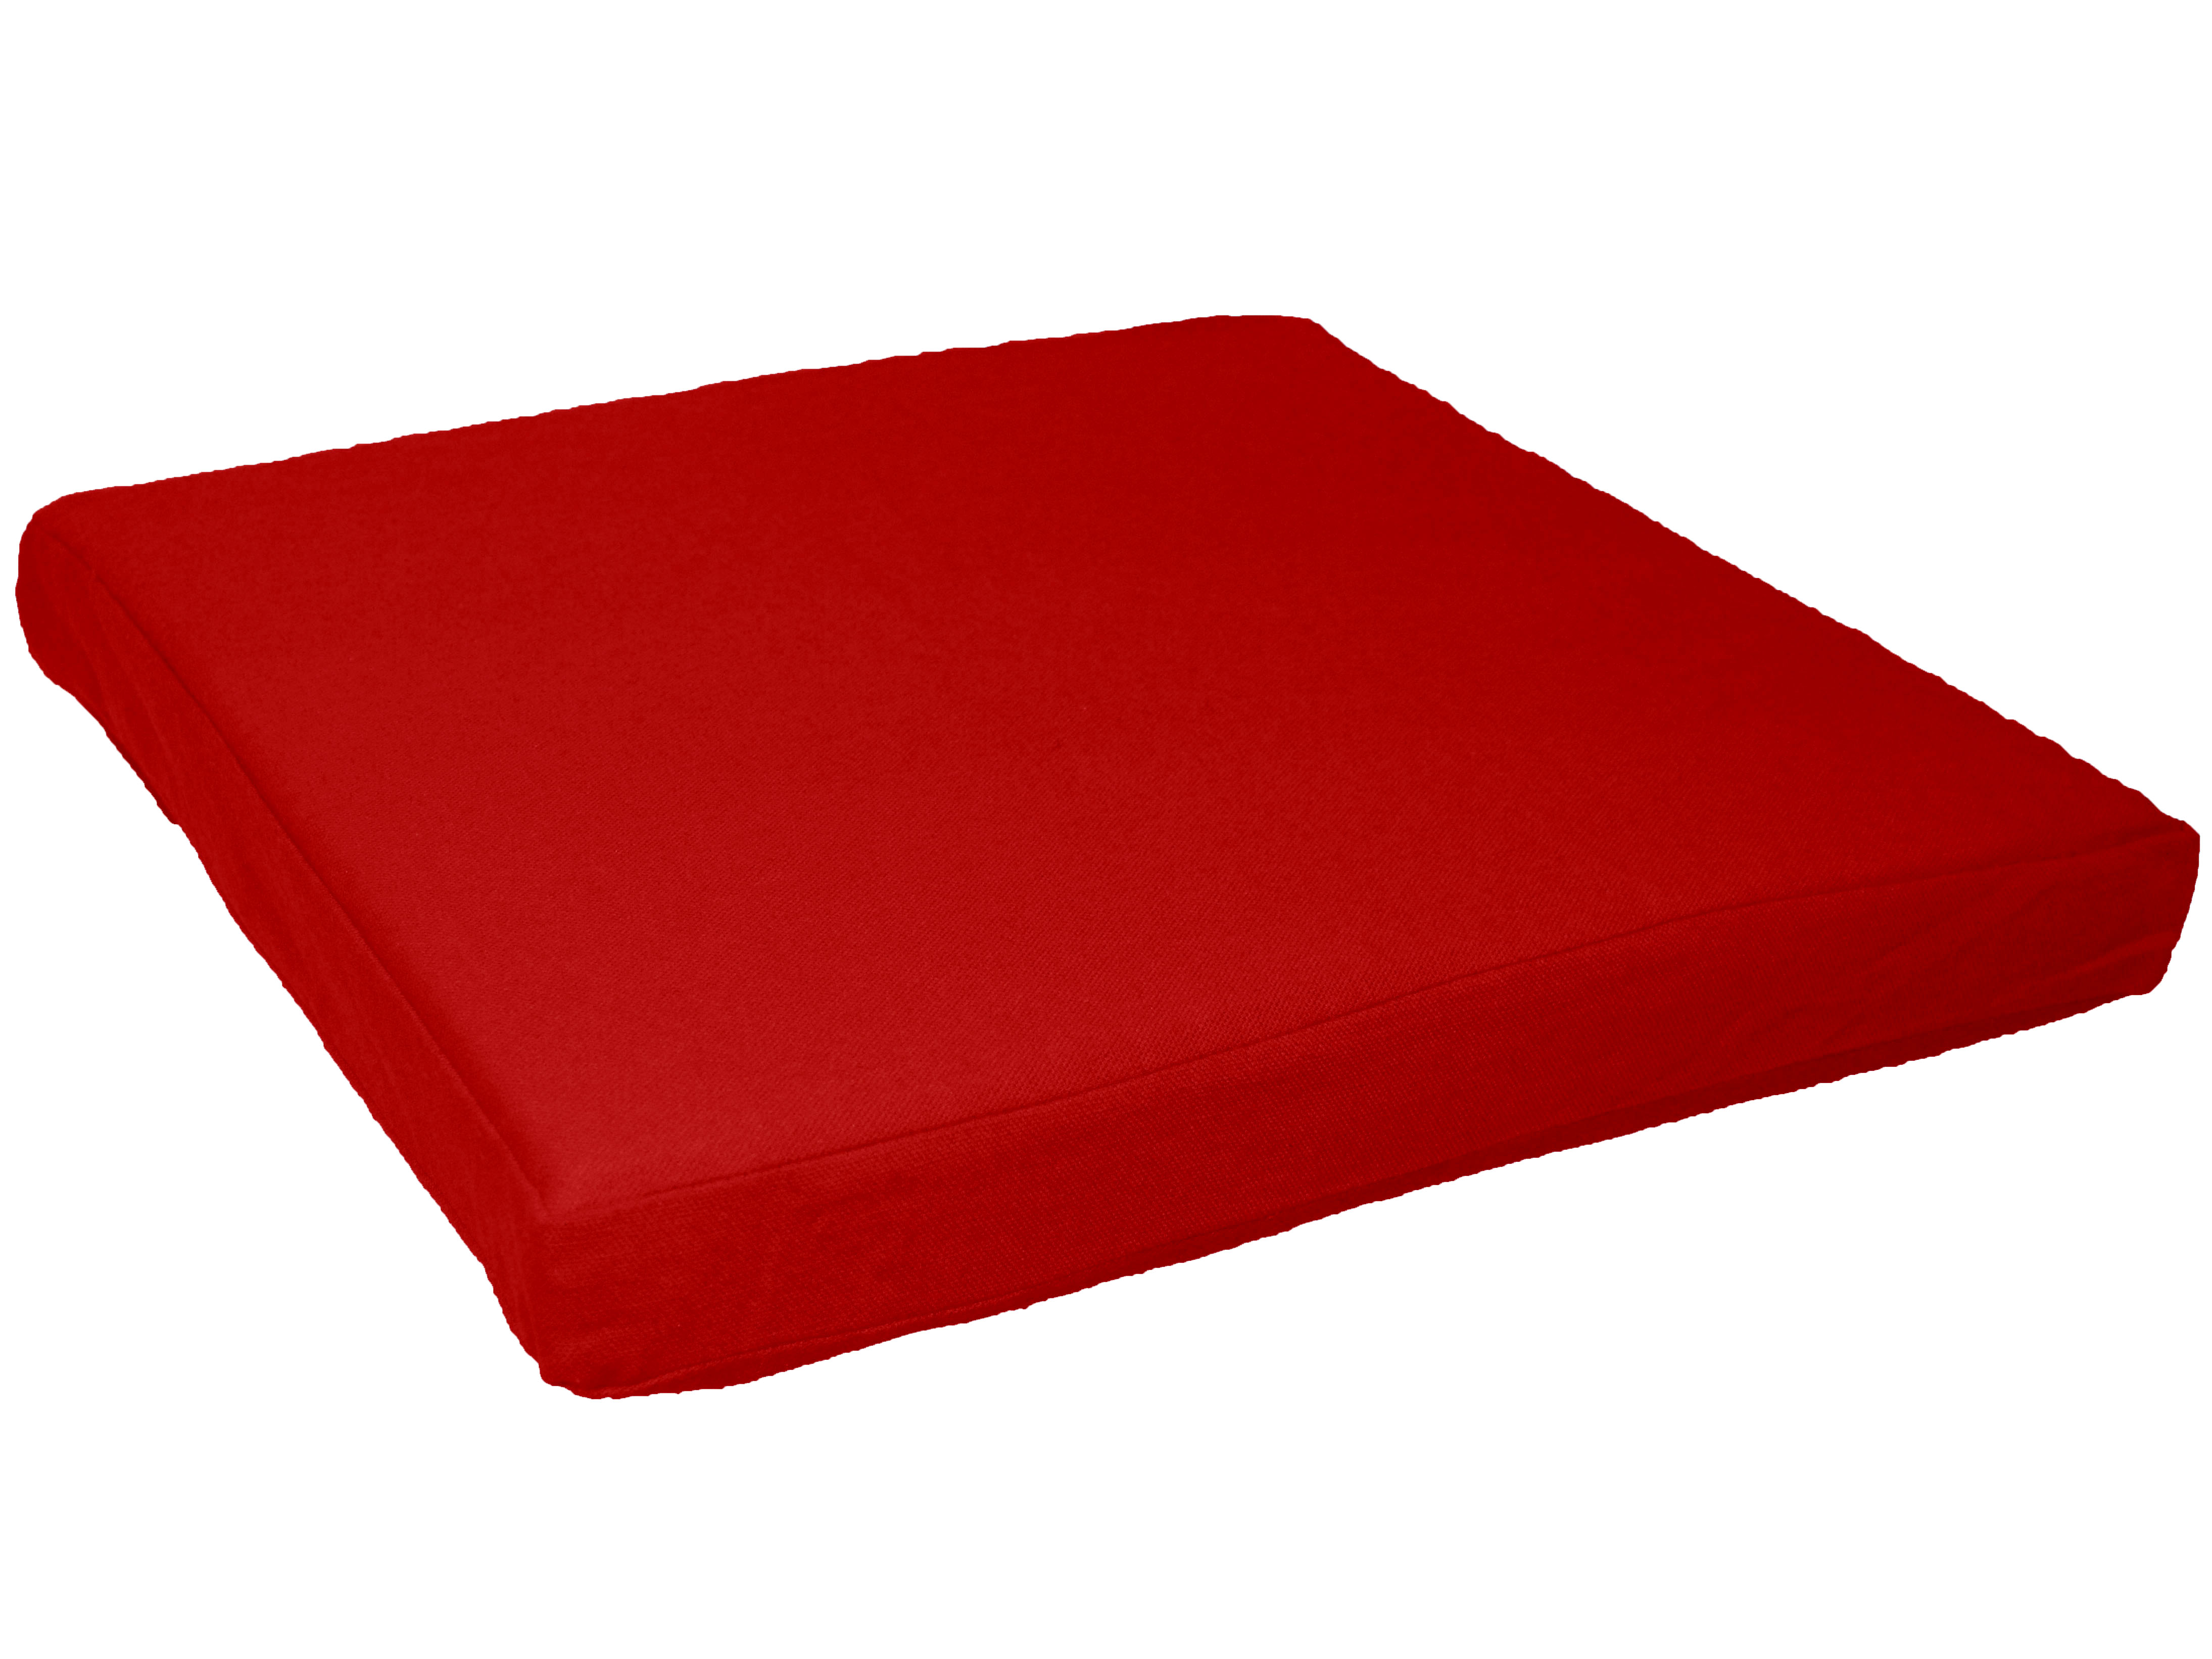 large square sofa cushions set online bangalore olx aa129t hot red cotton canvas 3d box seat